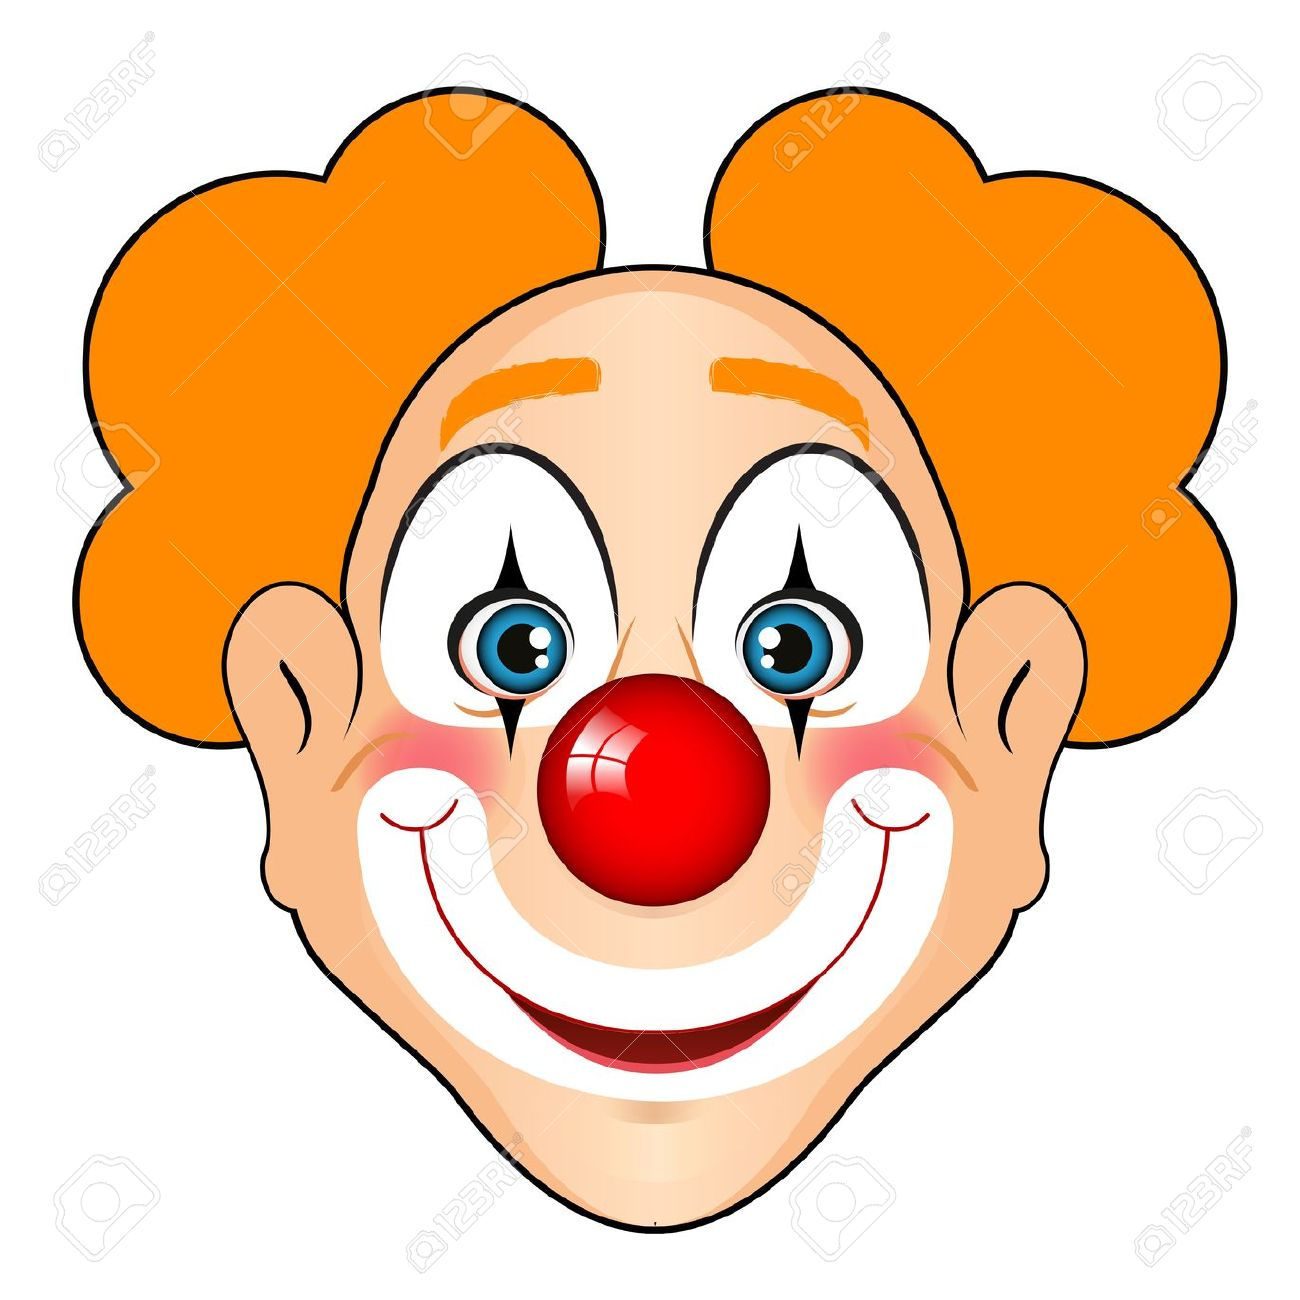 Circus joker face clipart image black and white Circus joker face clipart - ClipartFest image black and white